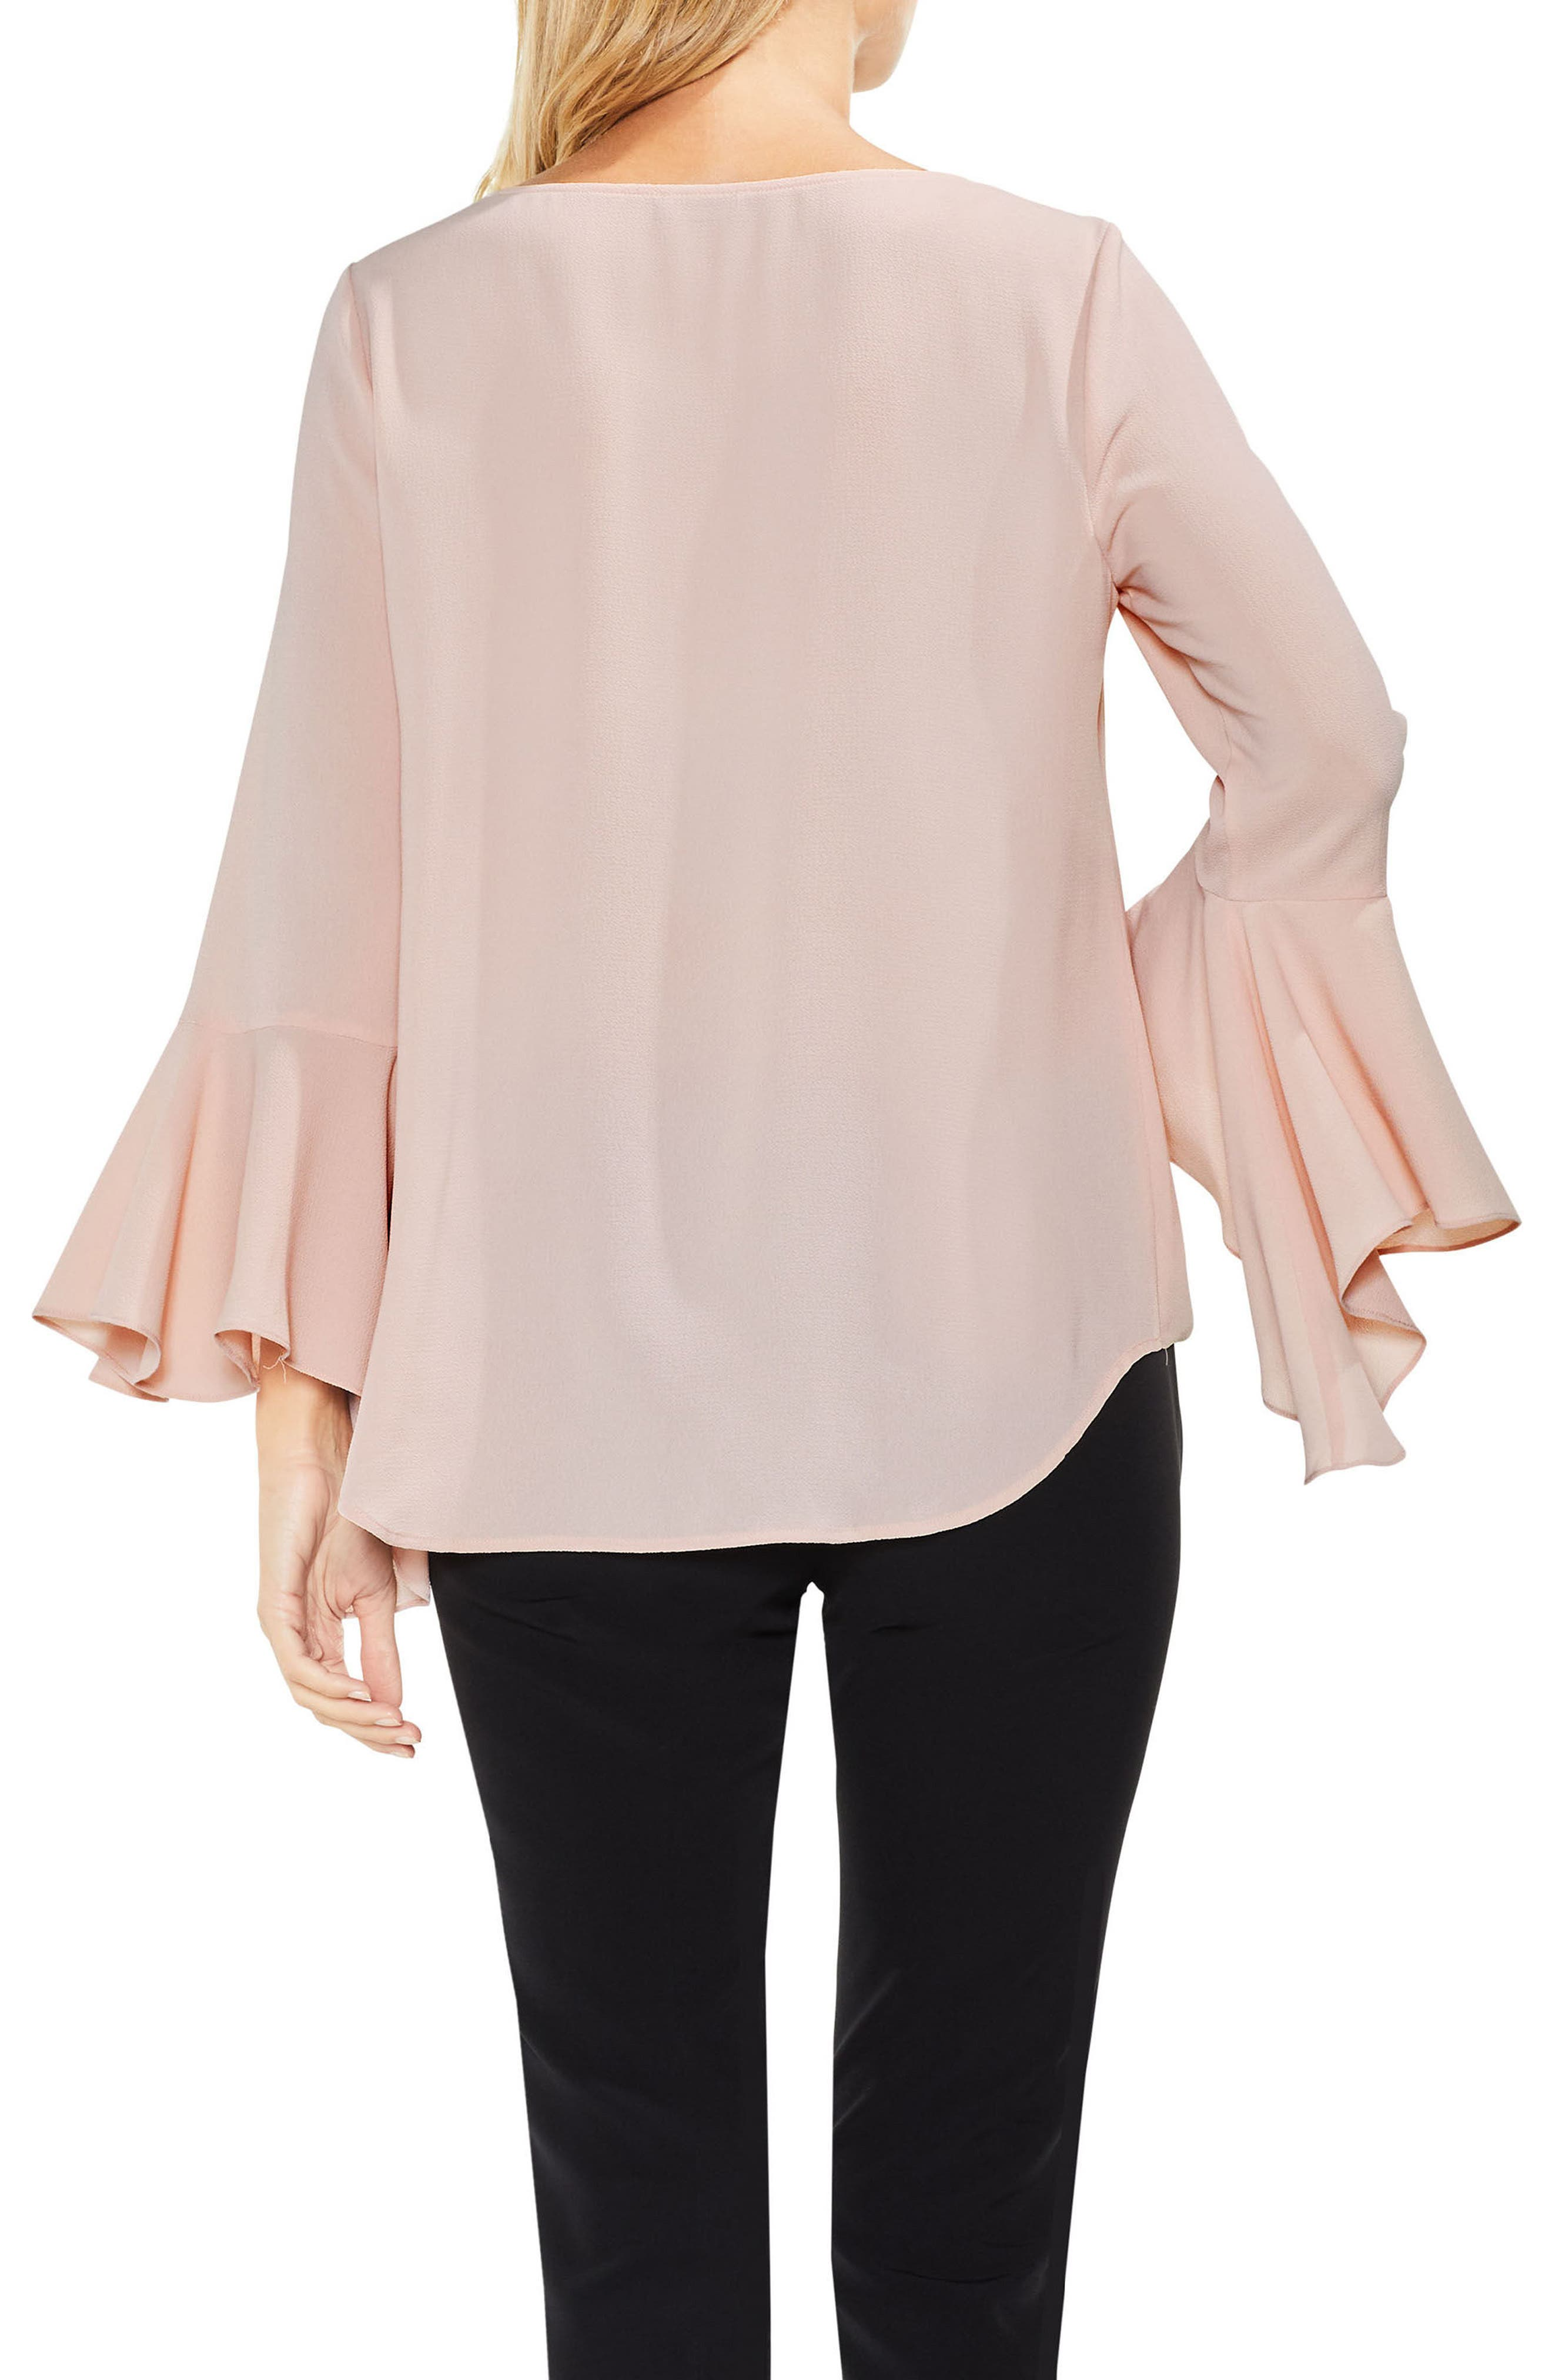 Bell Cuff Foldover Blouse,                             Alternate thumbnail 6, color,